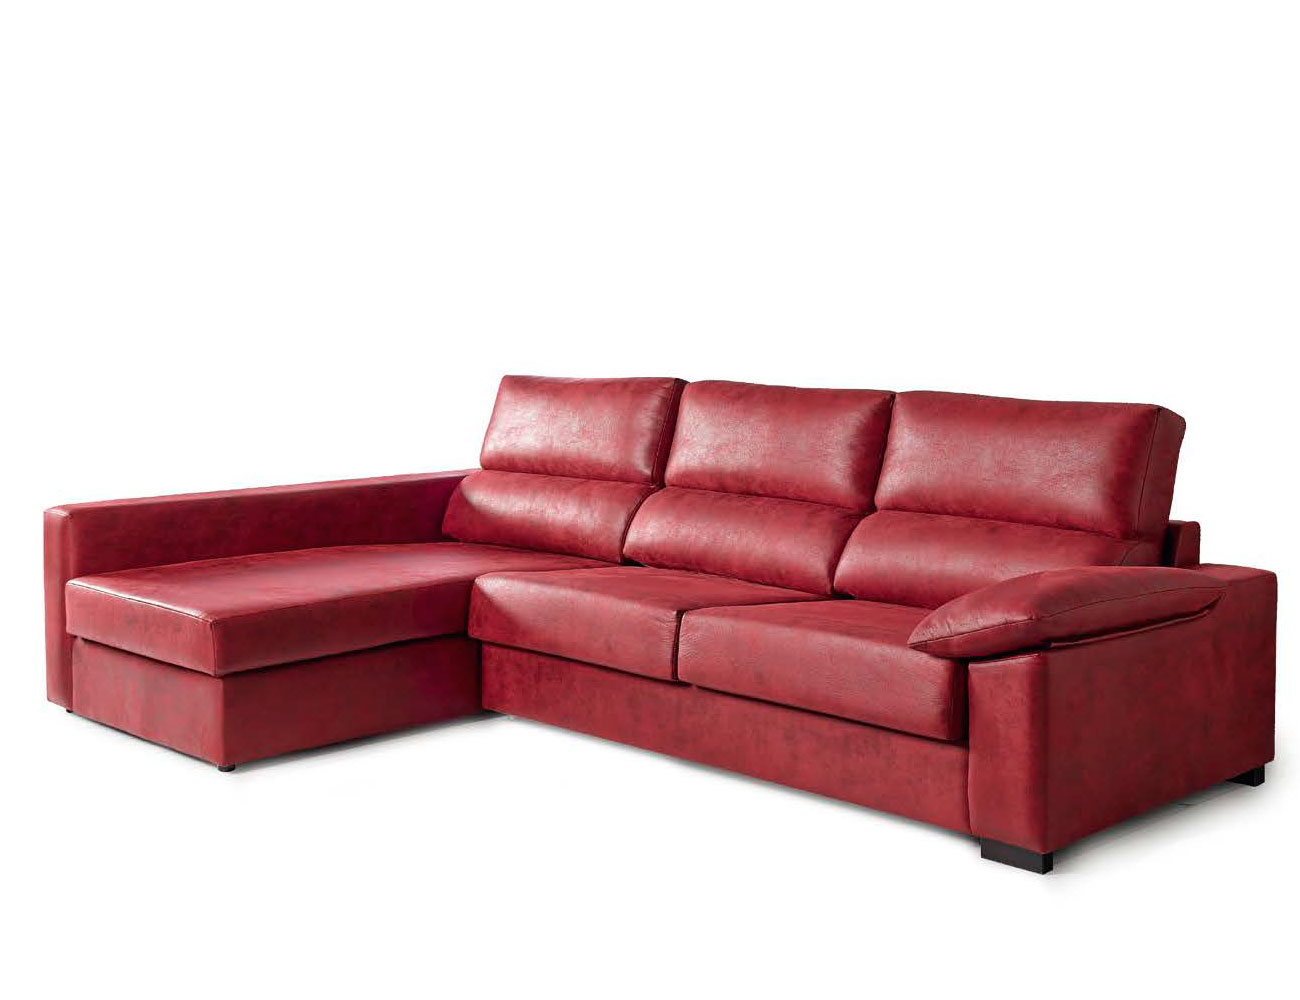 Sofa chaiselongue cama italiana leire rojo 3